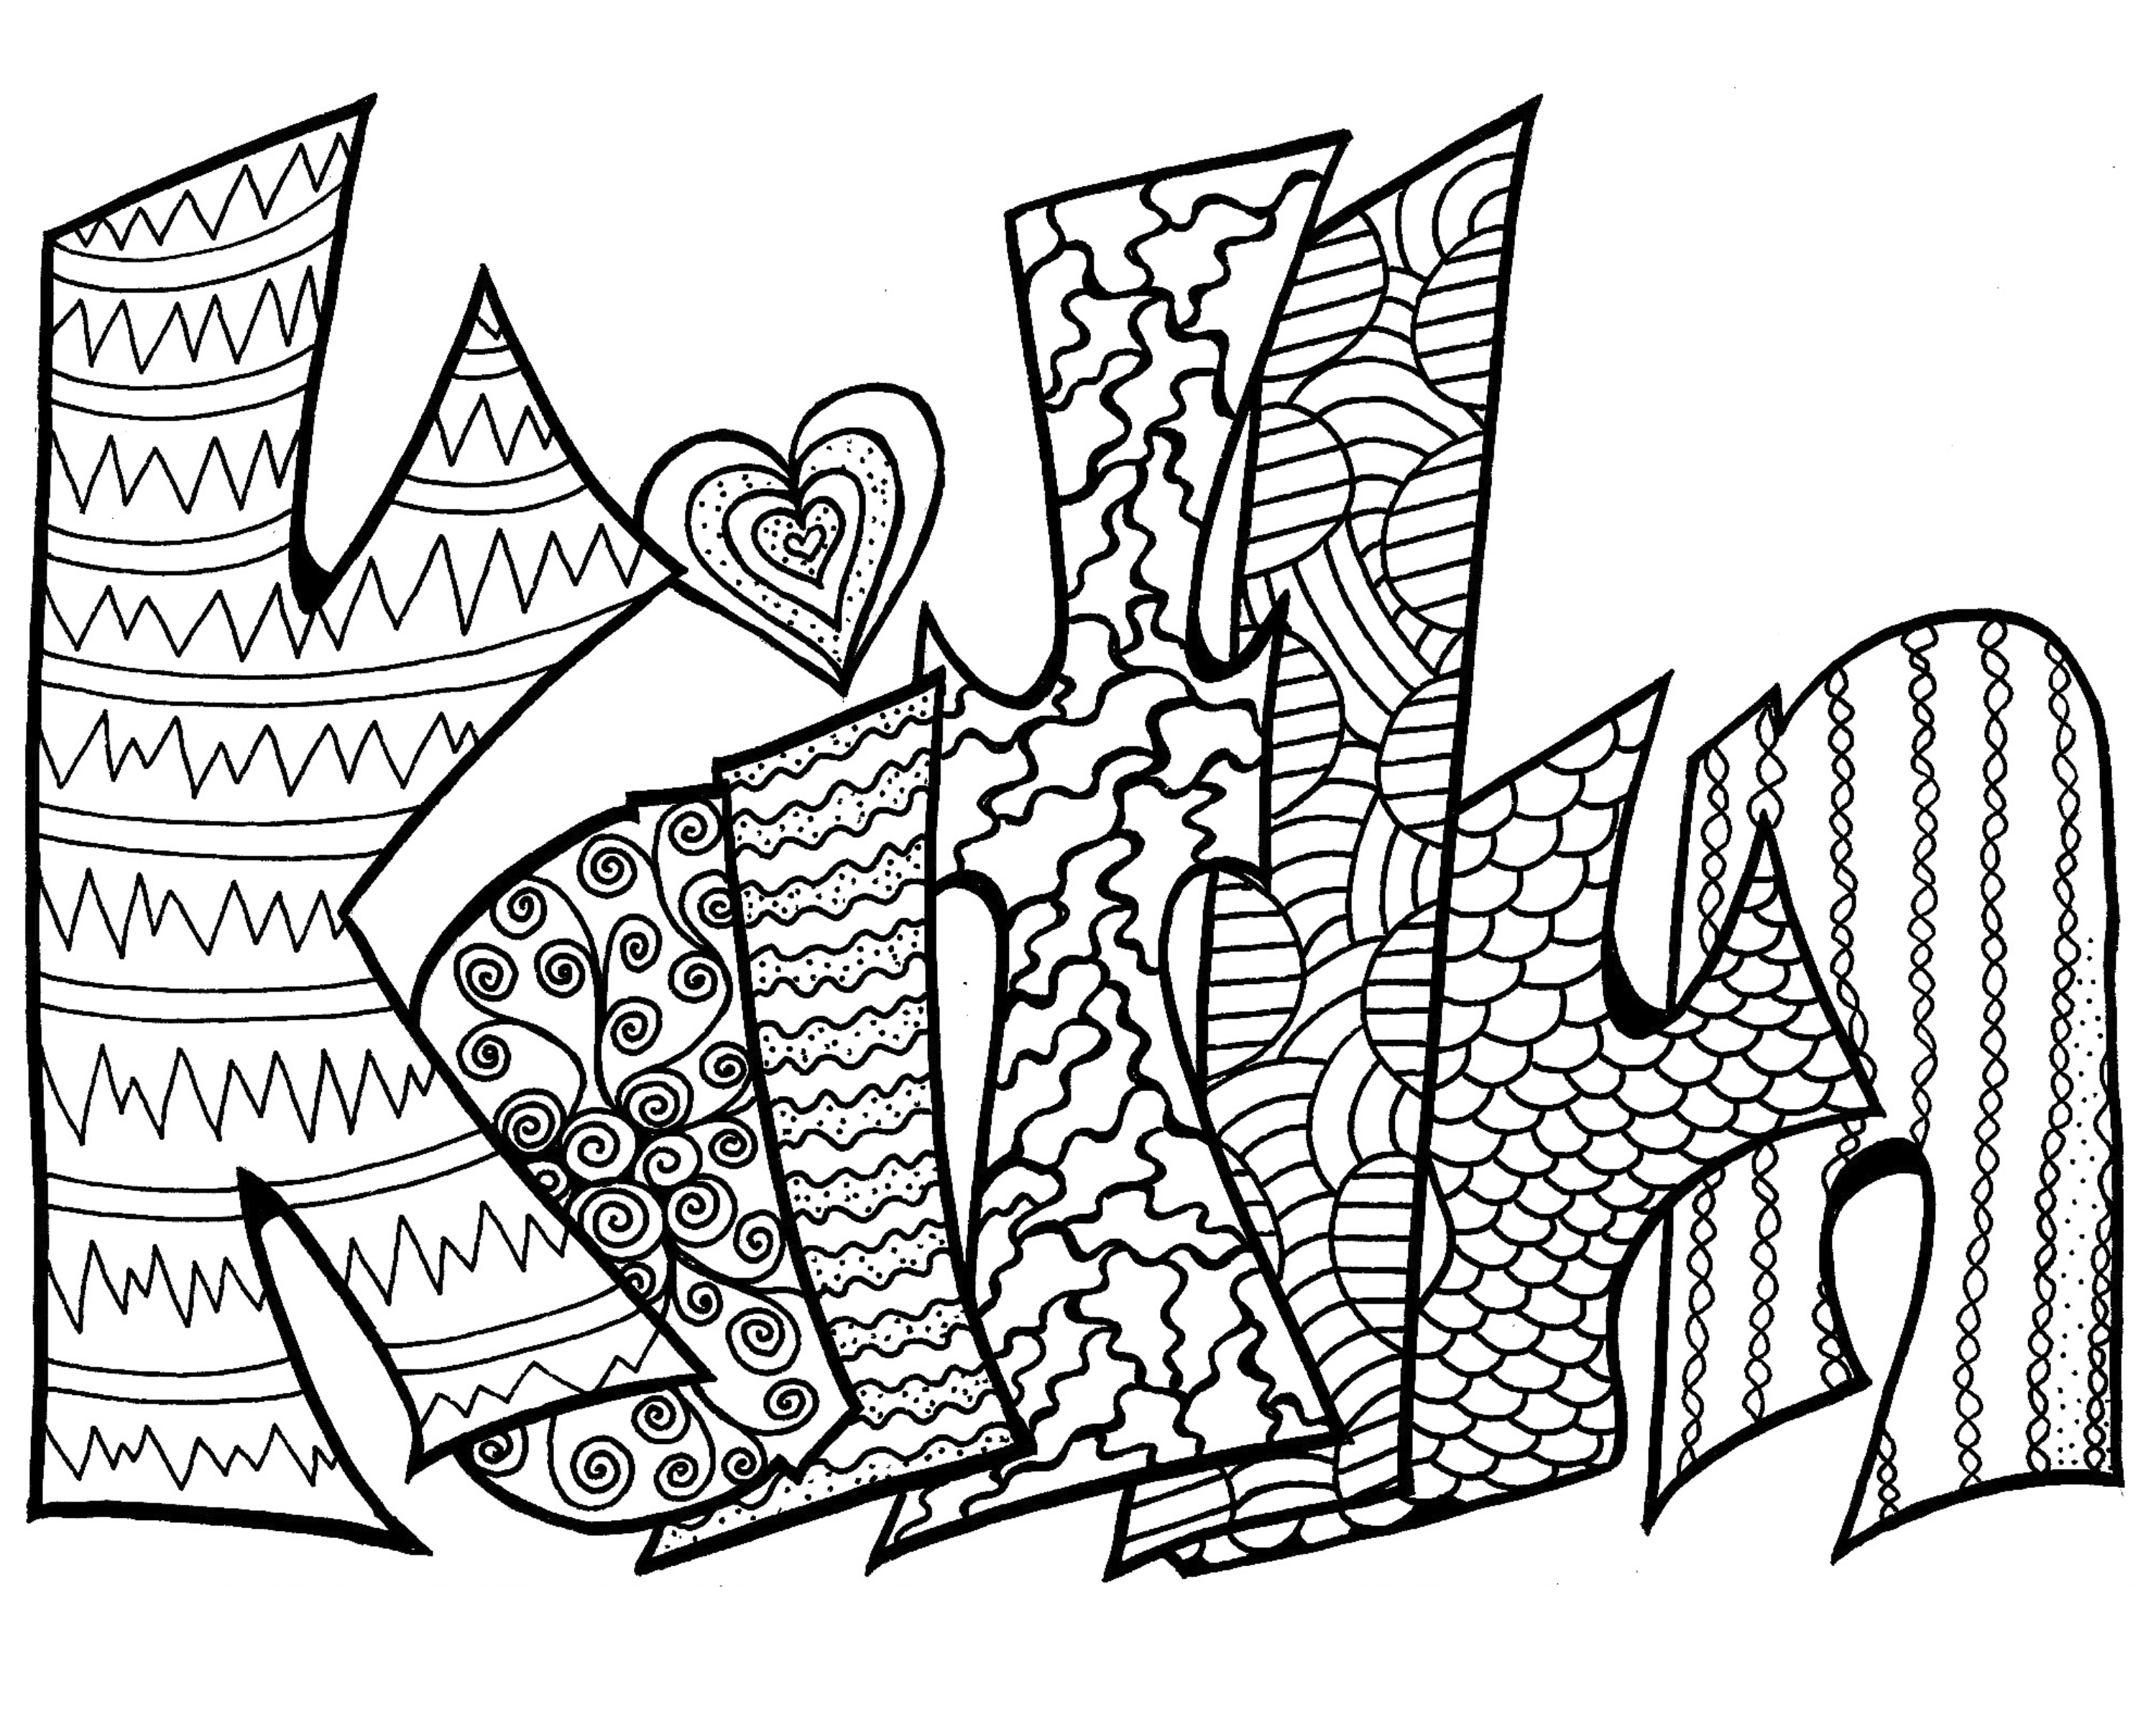 Your Free KAITLYN Printable Coloring Page